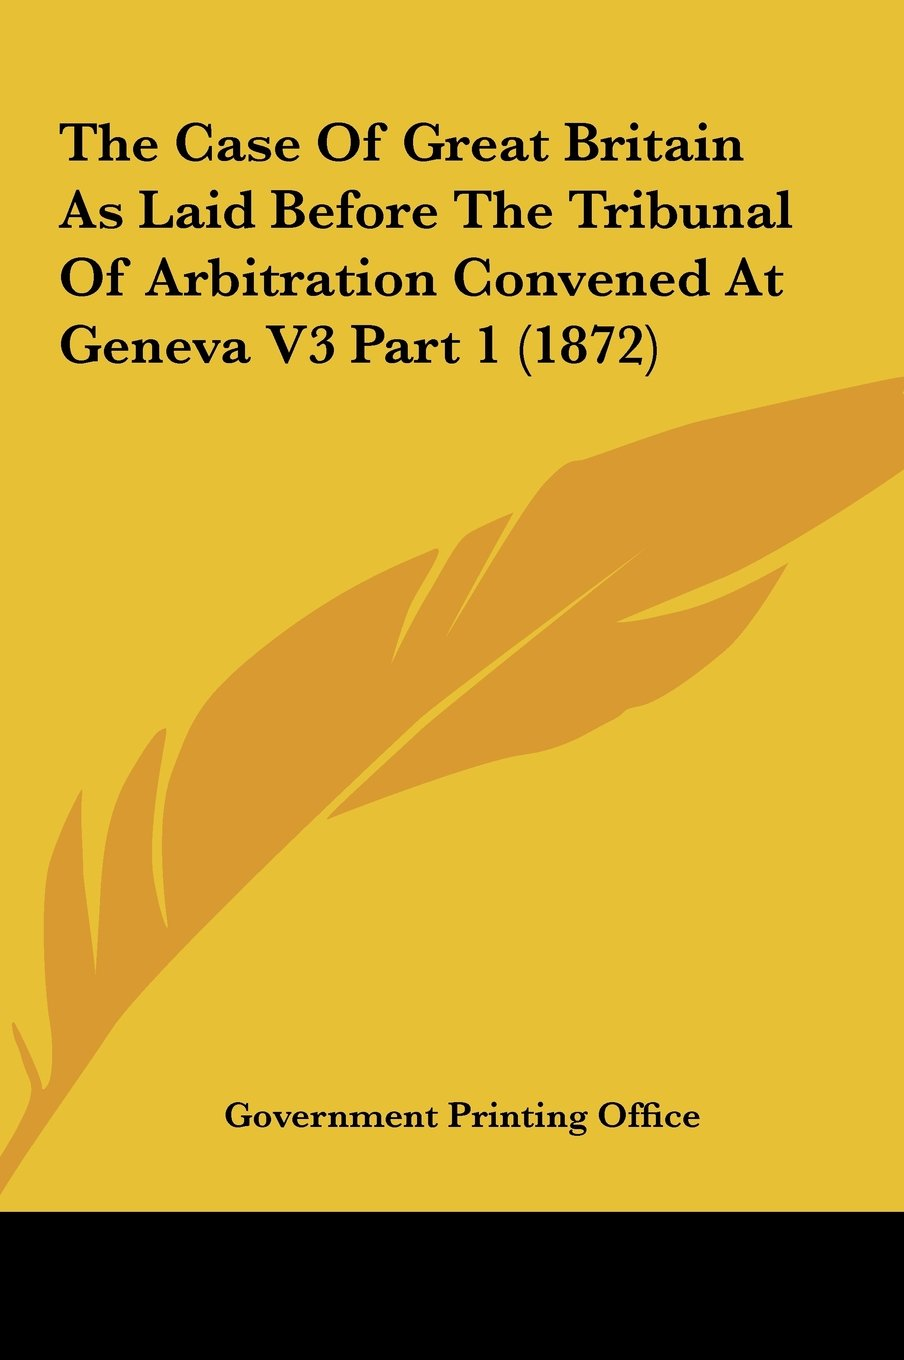 Download The Case of Great Britain as Laid Before the Tribunal of Arbitration Convened at Geneva V3 Part 1 (1872) pdf